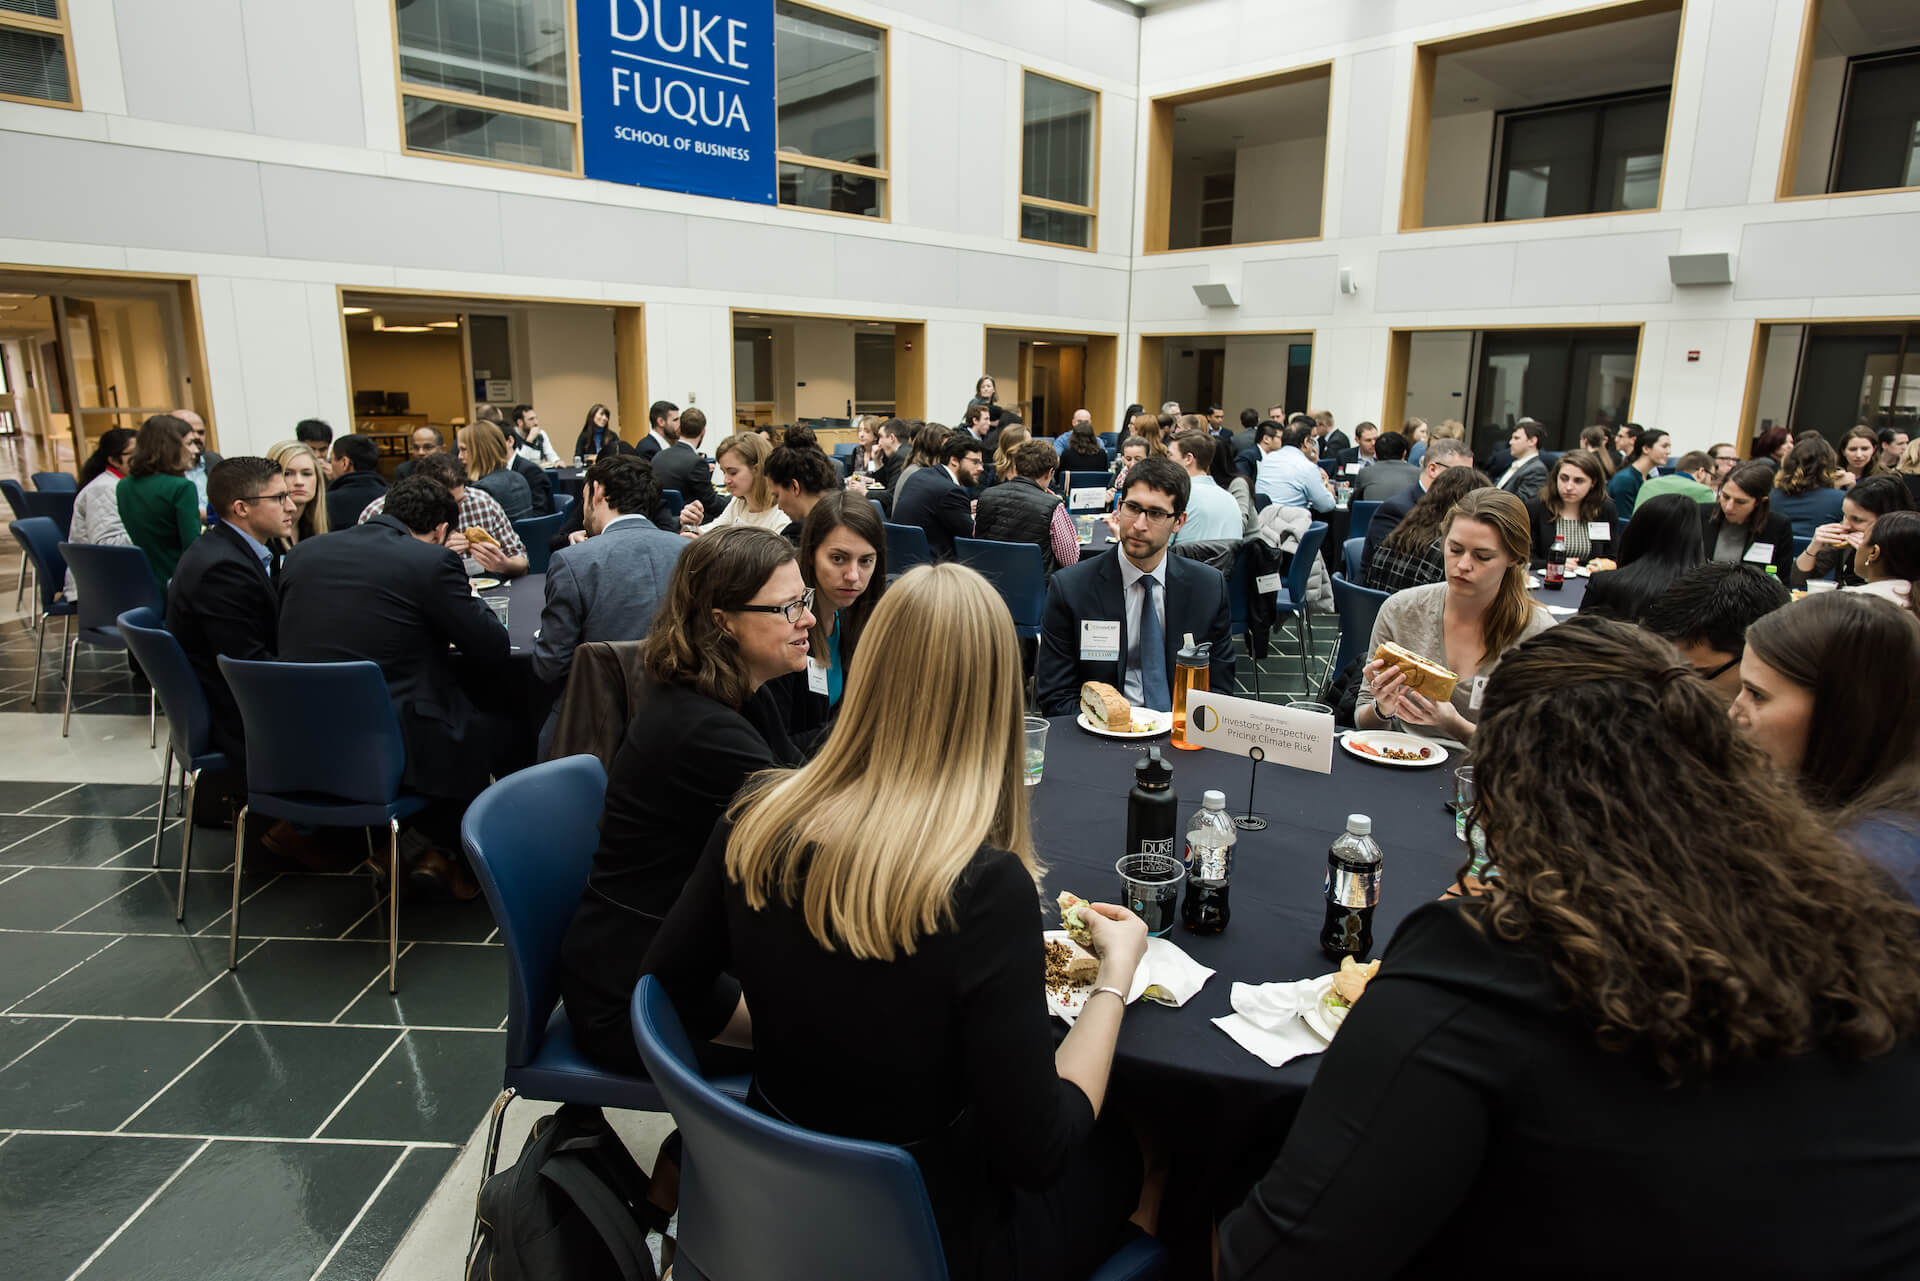 Climate Cap lunch in Fuqua's Fox Center